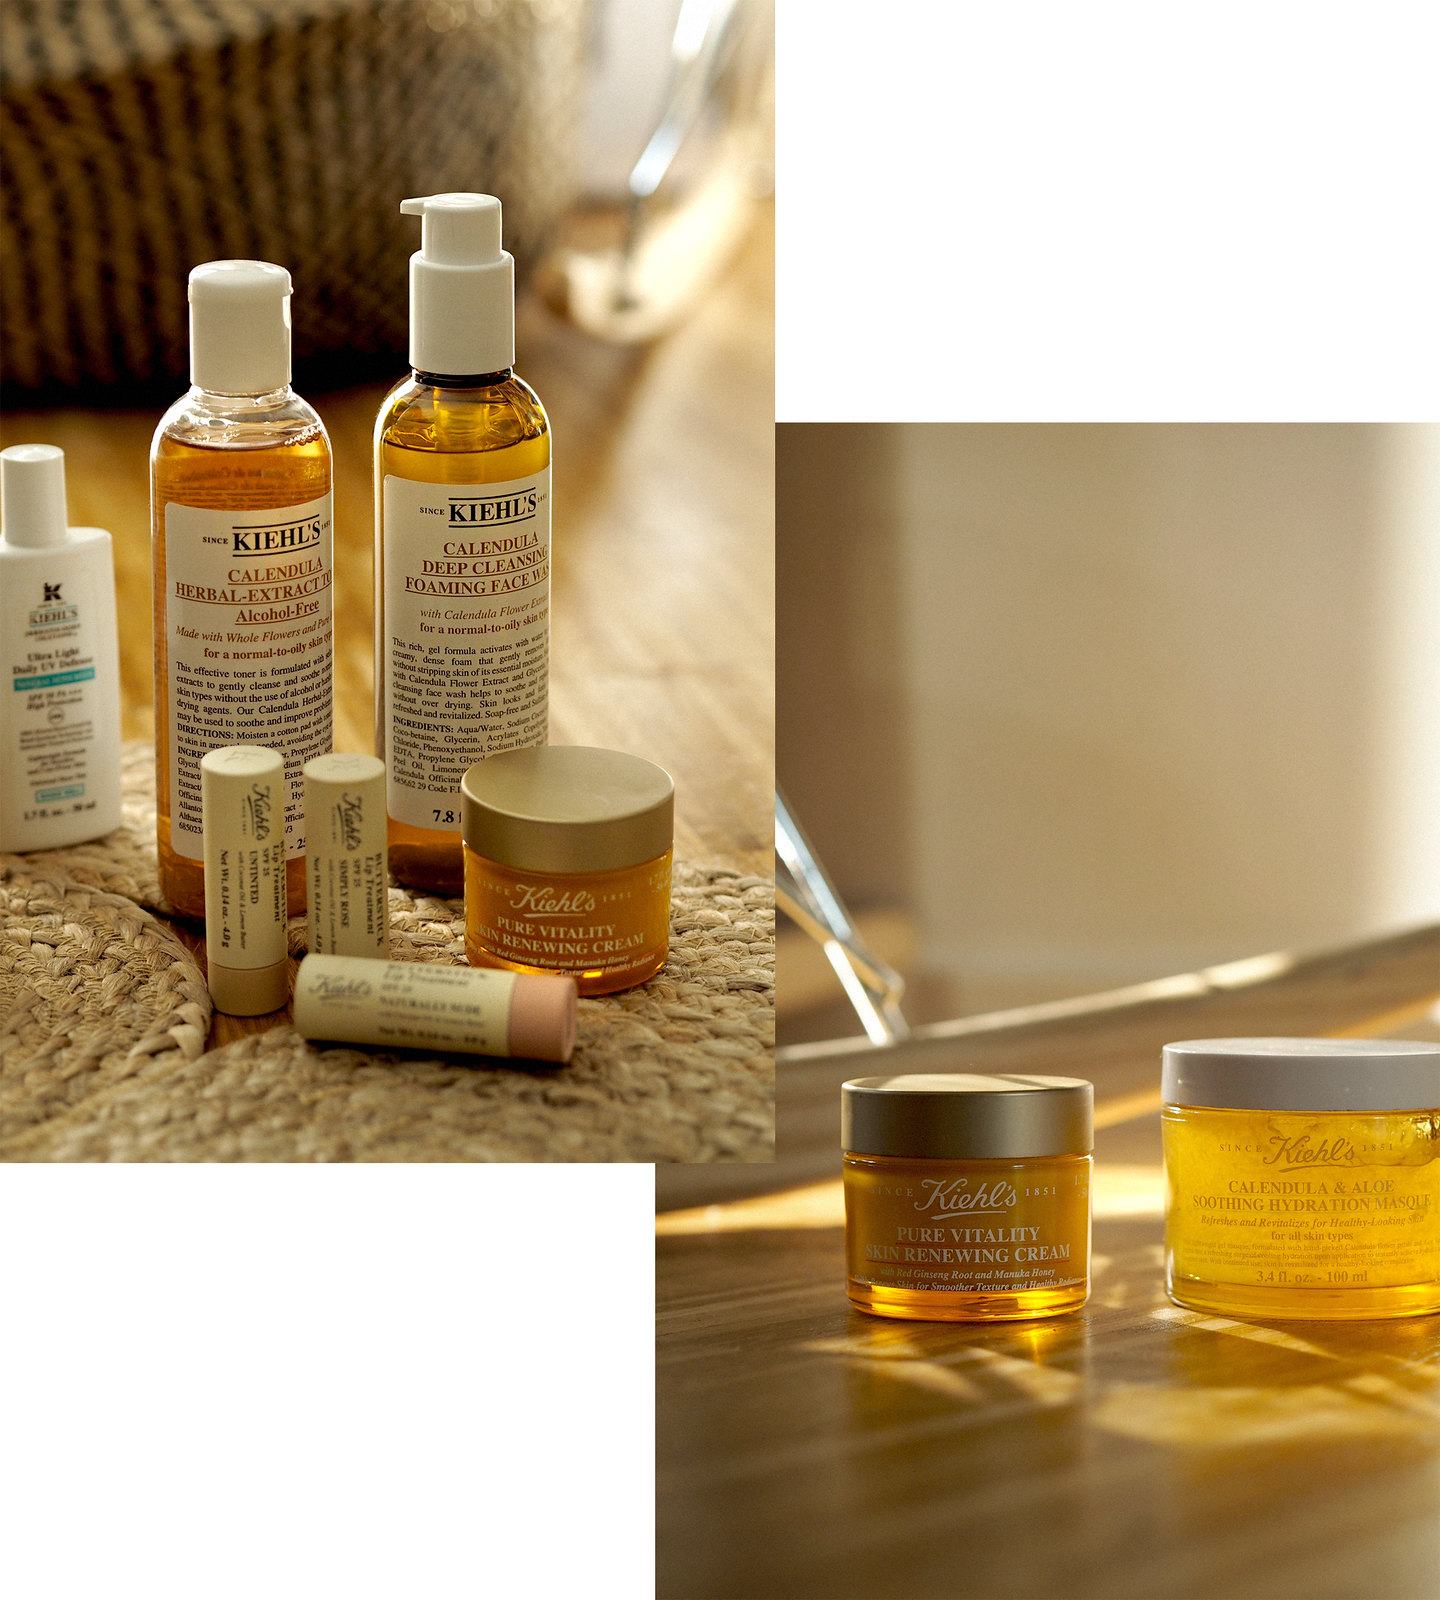 kiehl's morning routine beauty beautyblogger golden light amber beautiful wood calendula cleansing moisturizing mask skincare apothecary video blogger vlogger cats & dogs beautblog ricarda schernus düsseldorf max bechmann fotografie film nrw blog 1